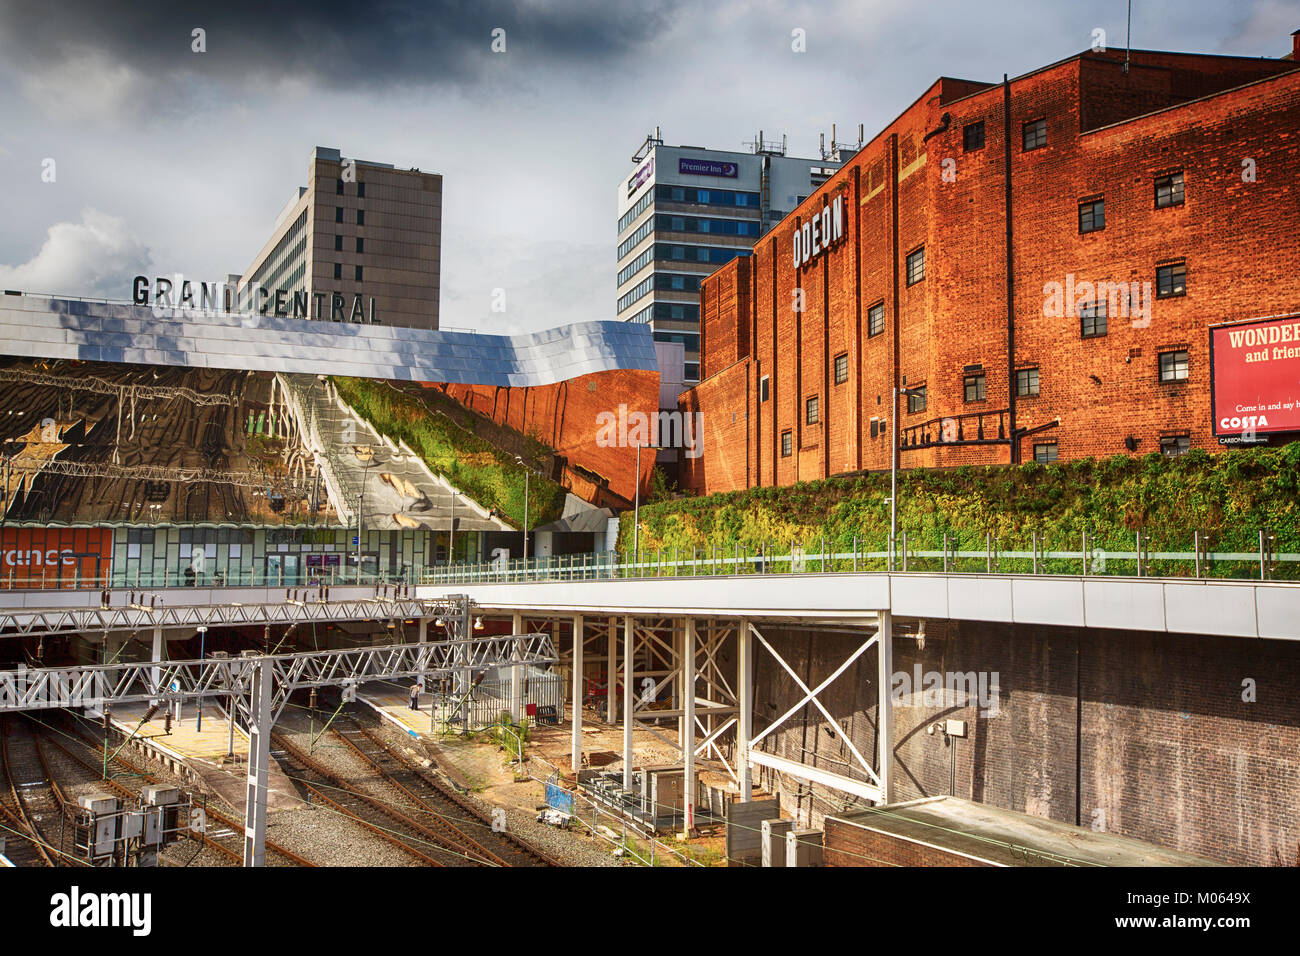 Birmingham New Street Station, Birmingham, UK. - Stock Image